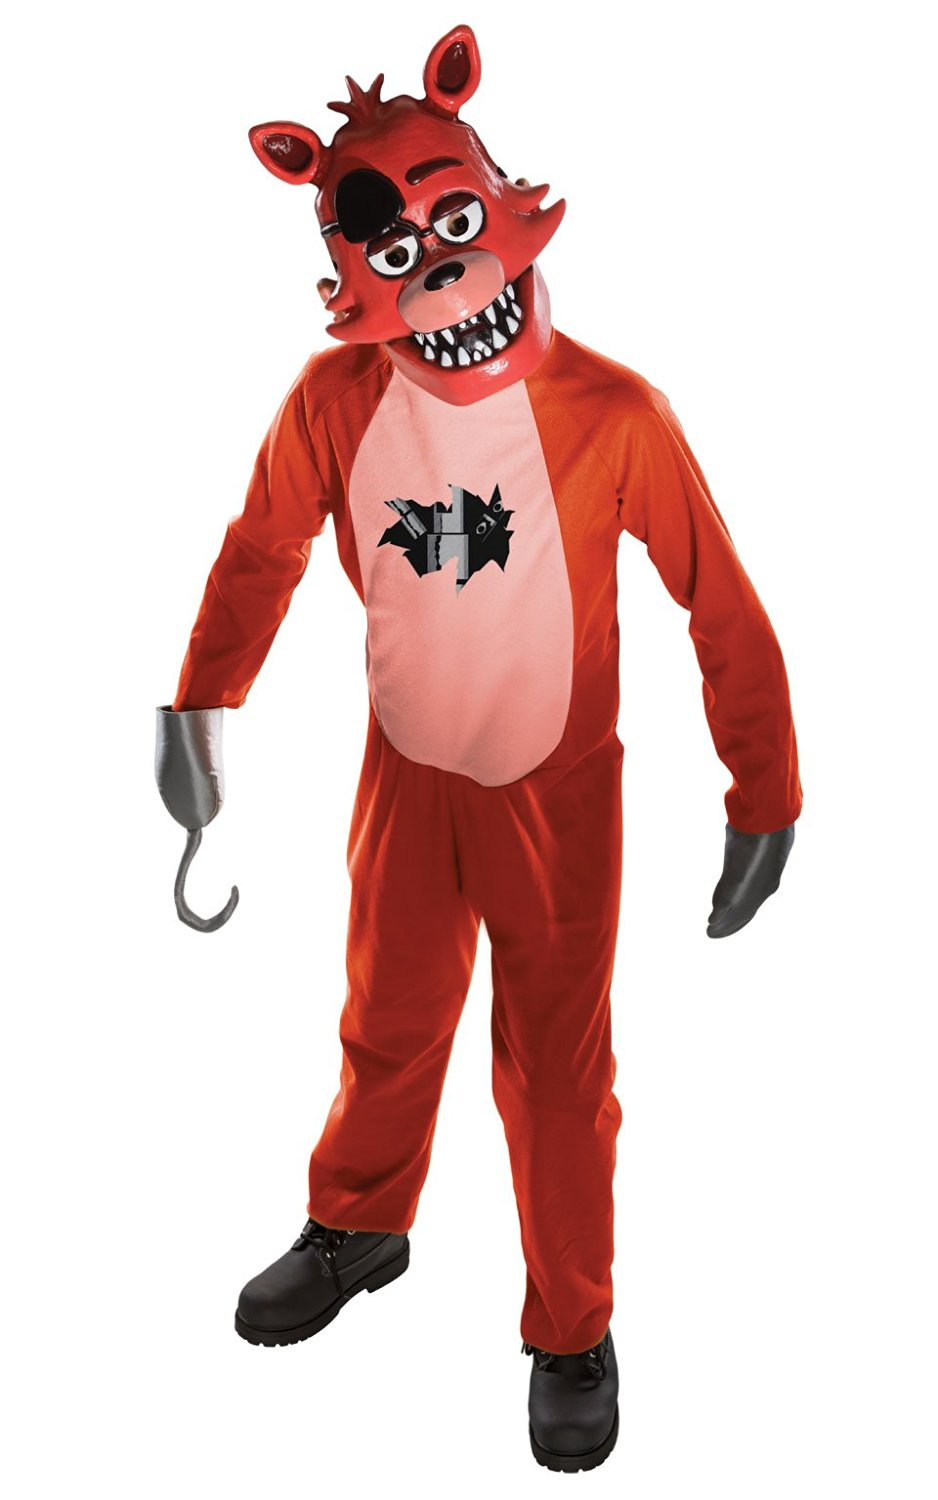 Foxy costume from 5 nights at Freddys 630099. Larg